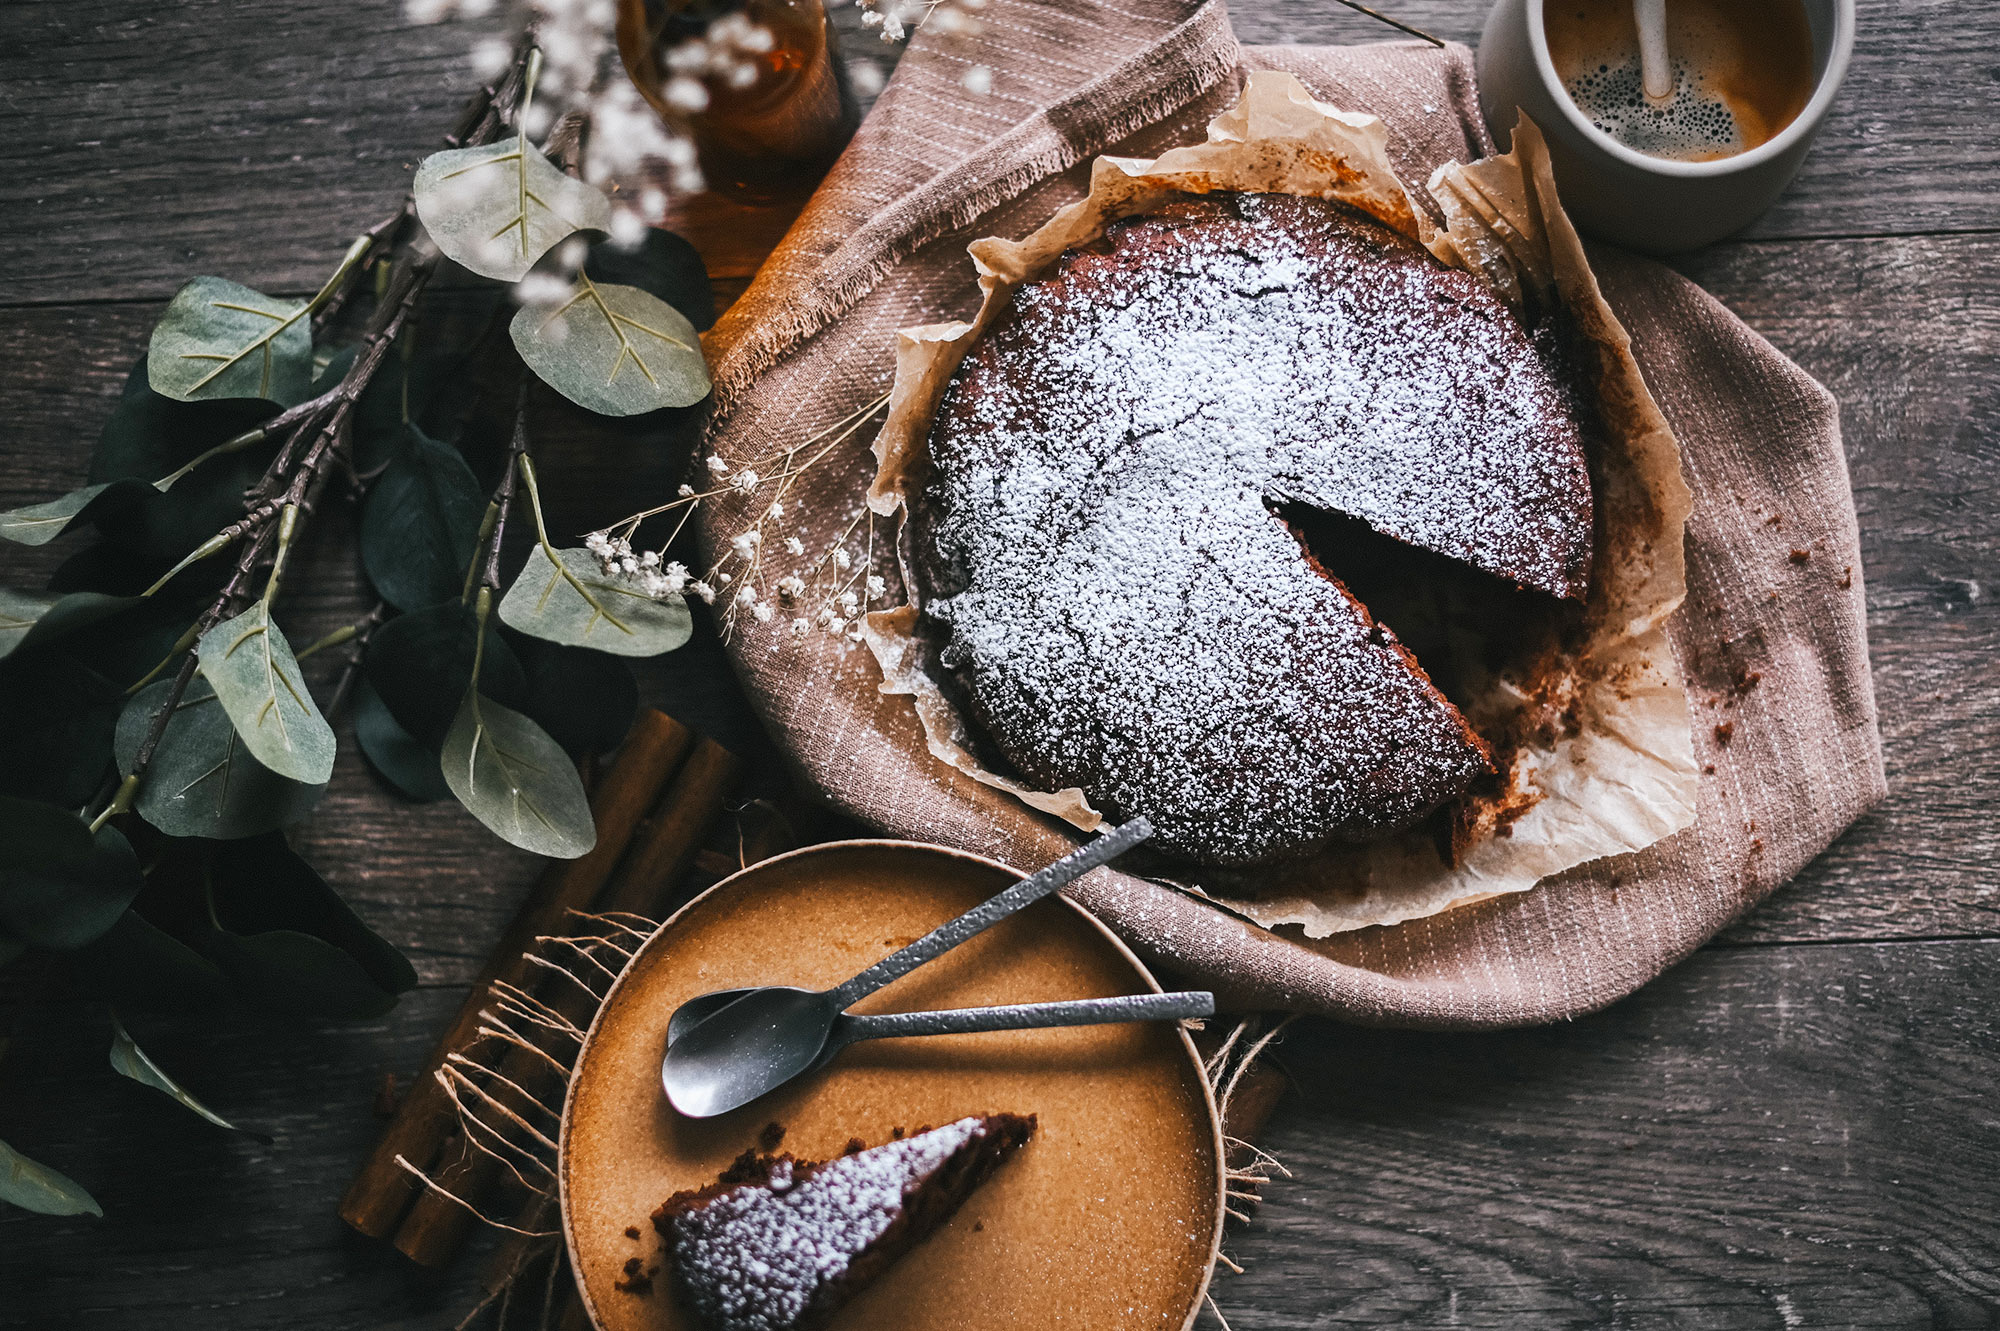 Torta al cioccolato - Photo by Gaelle Marcel on Unsplash